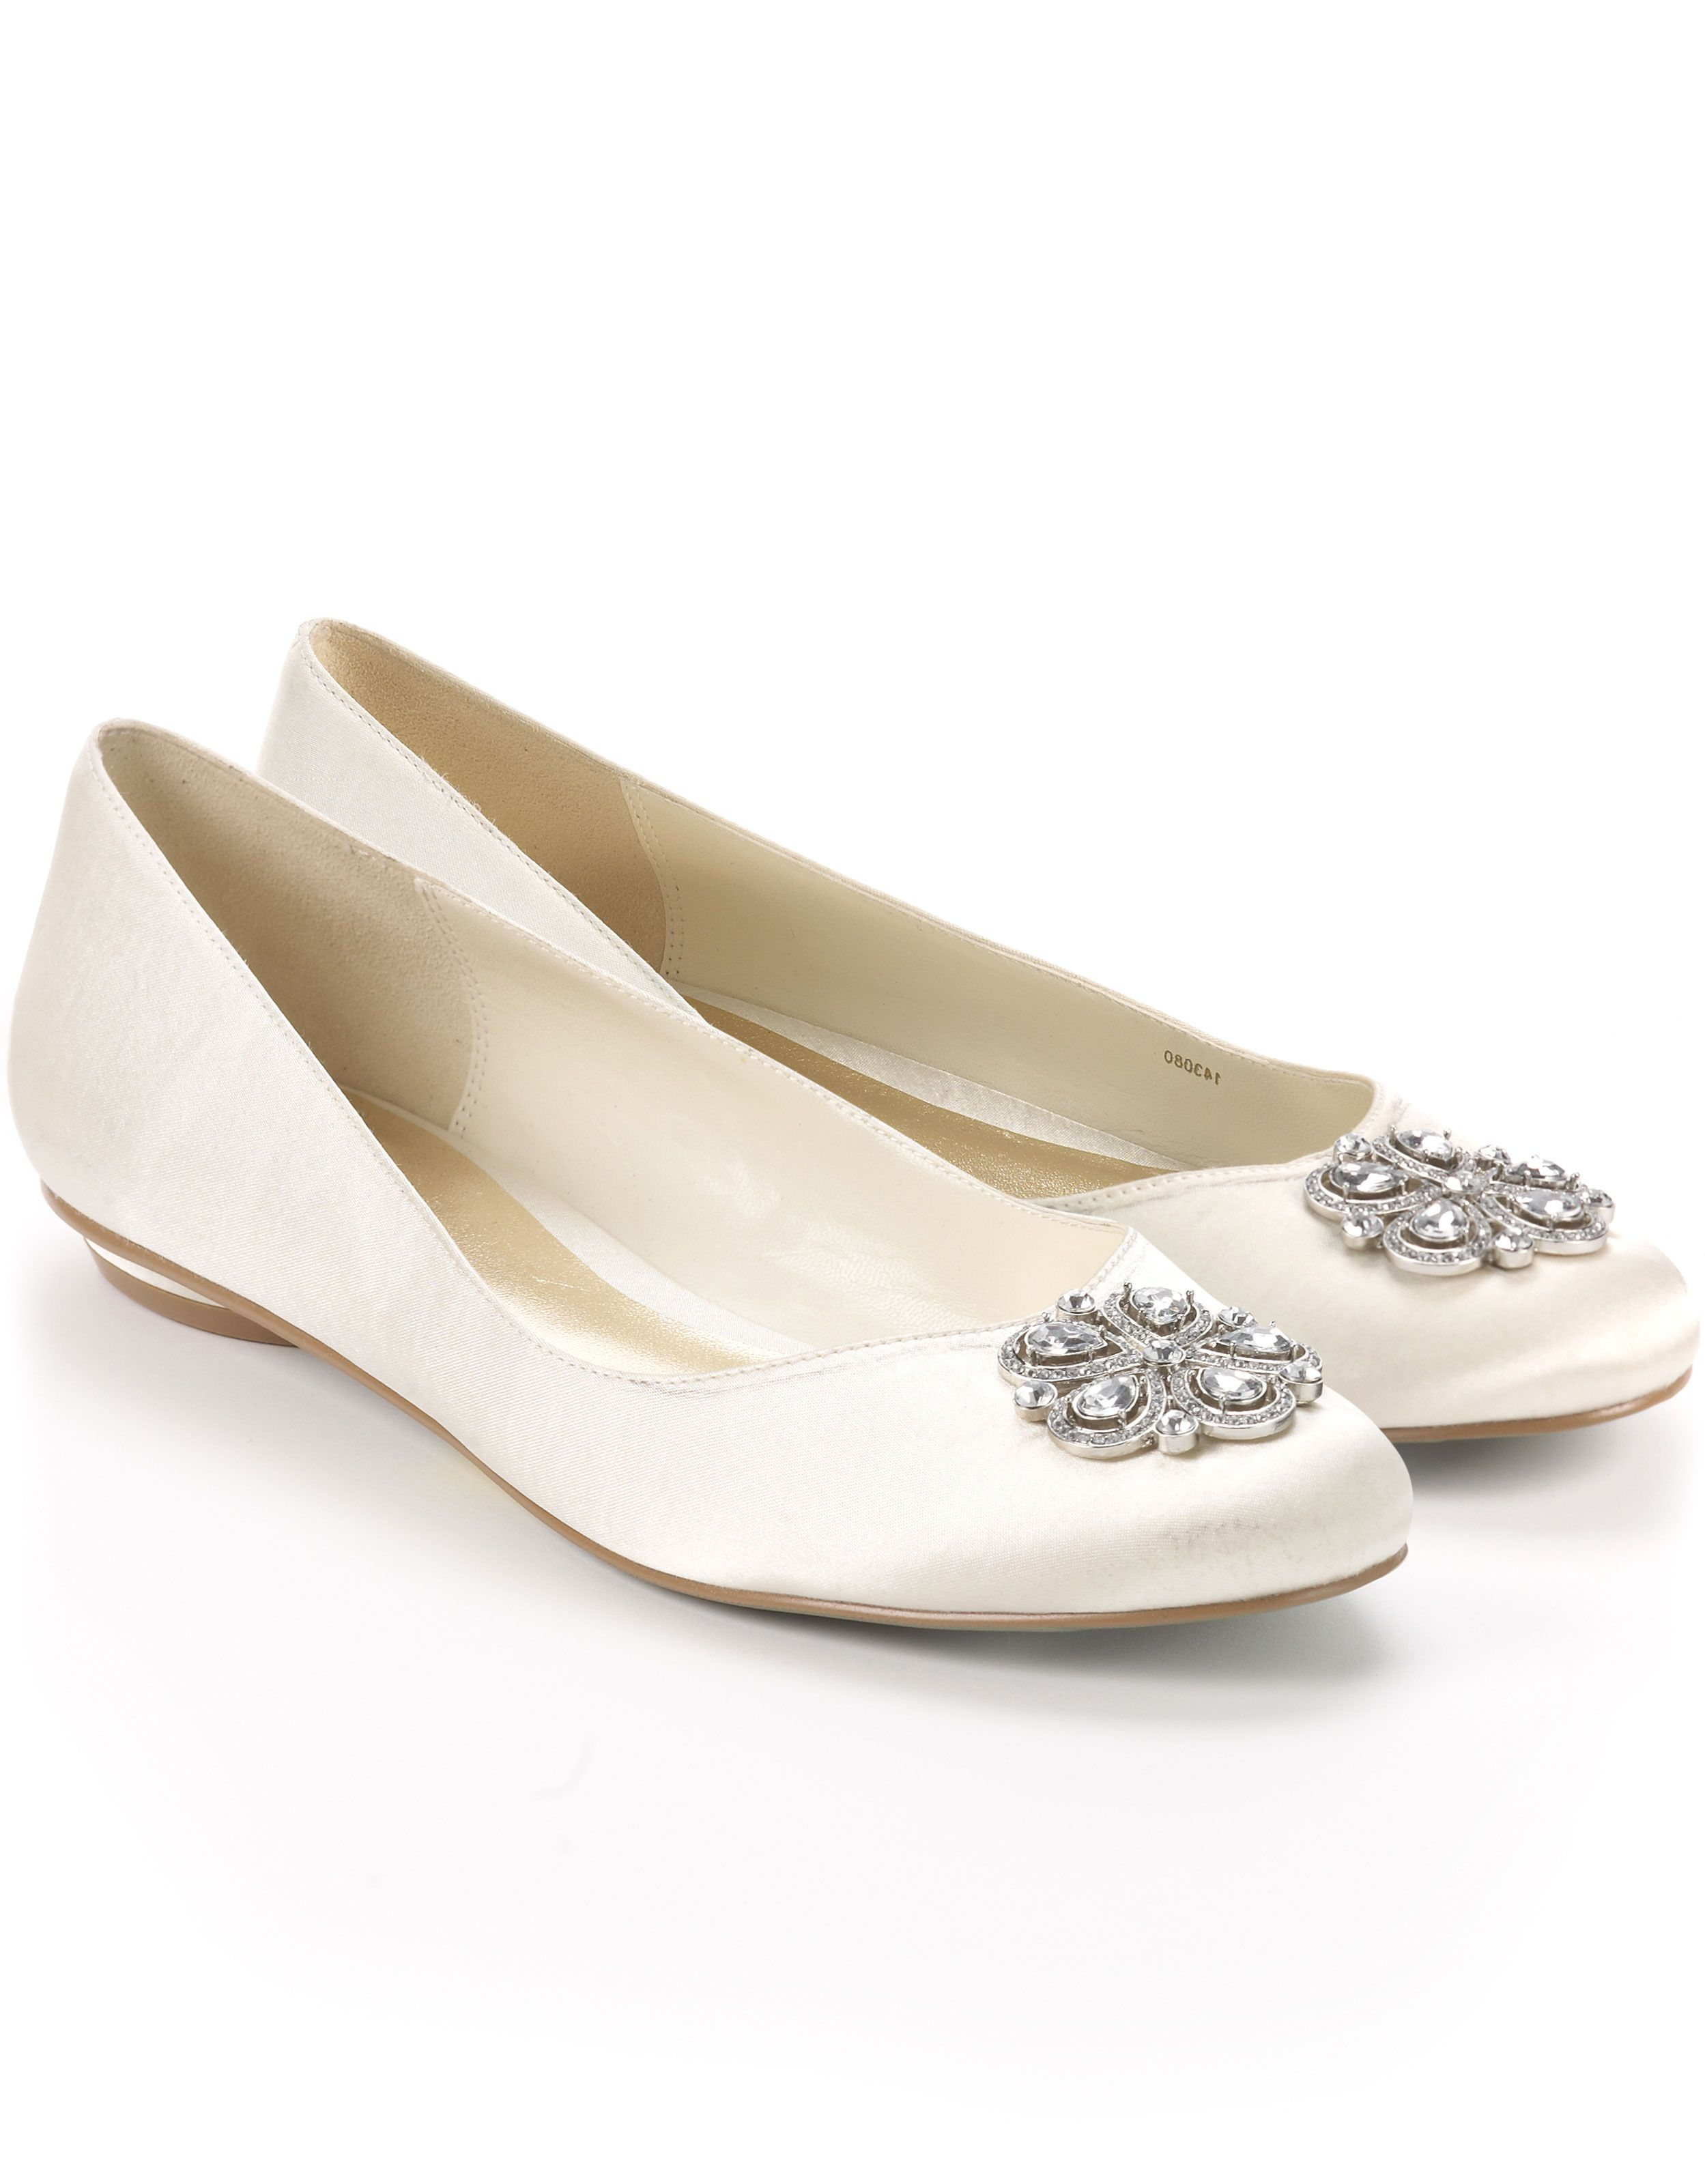 6b9a40186db amazing designer flat shoes